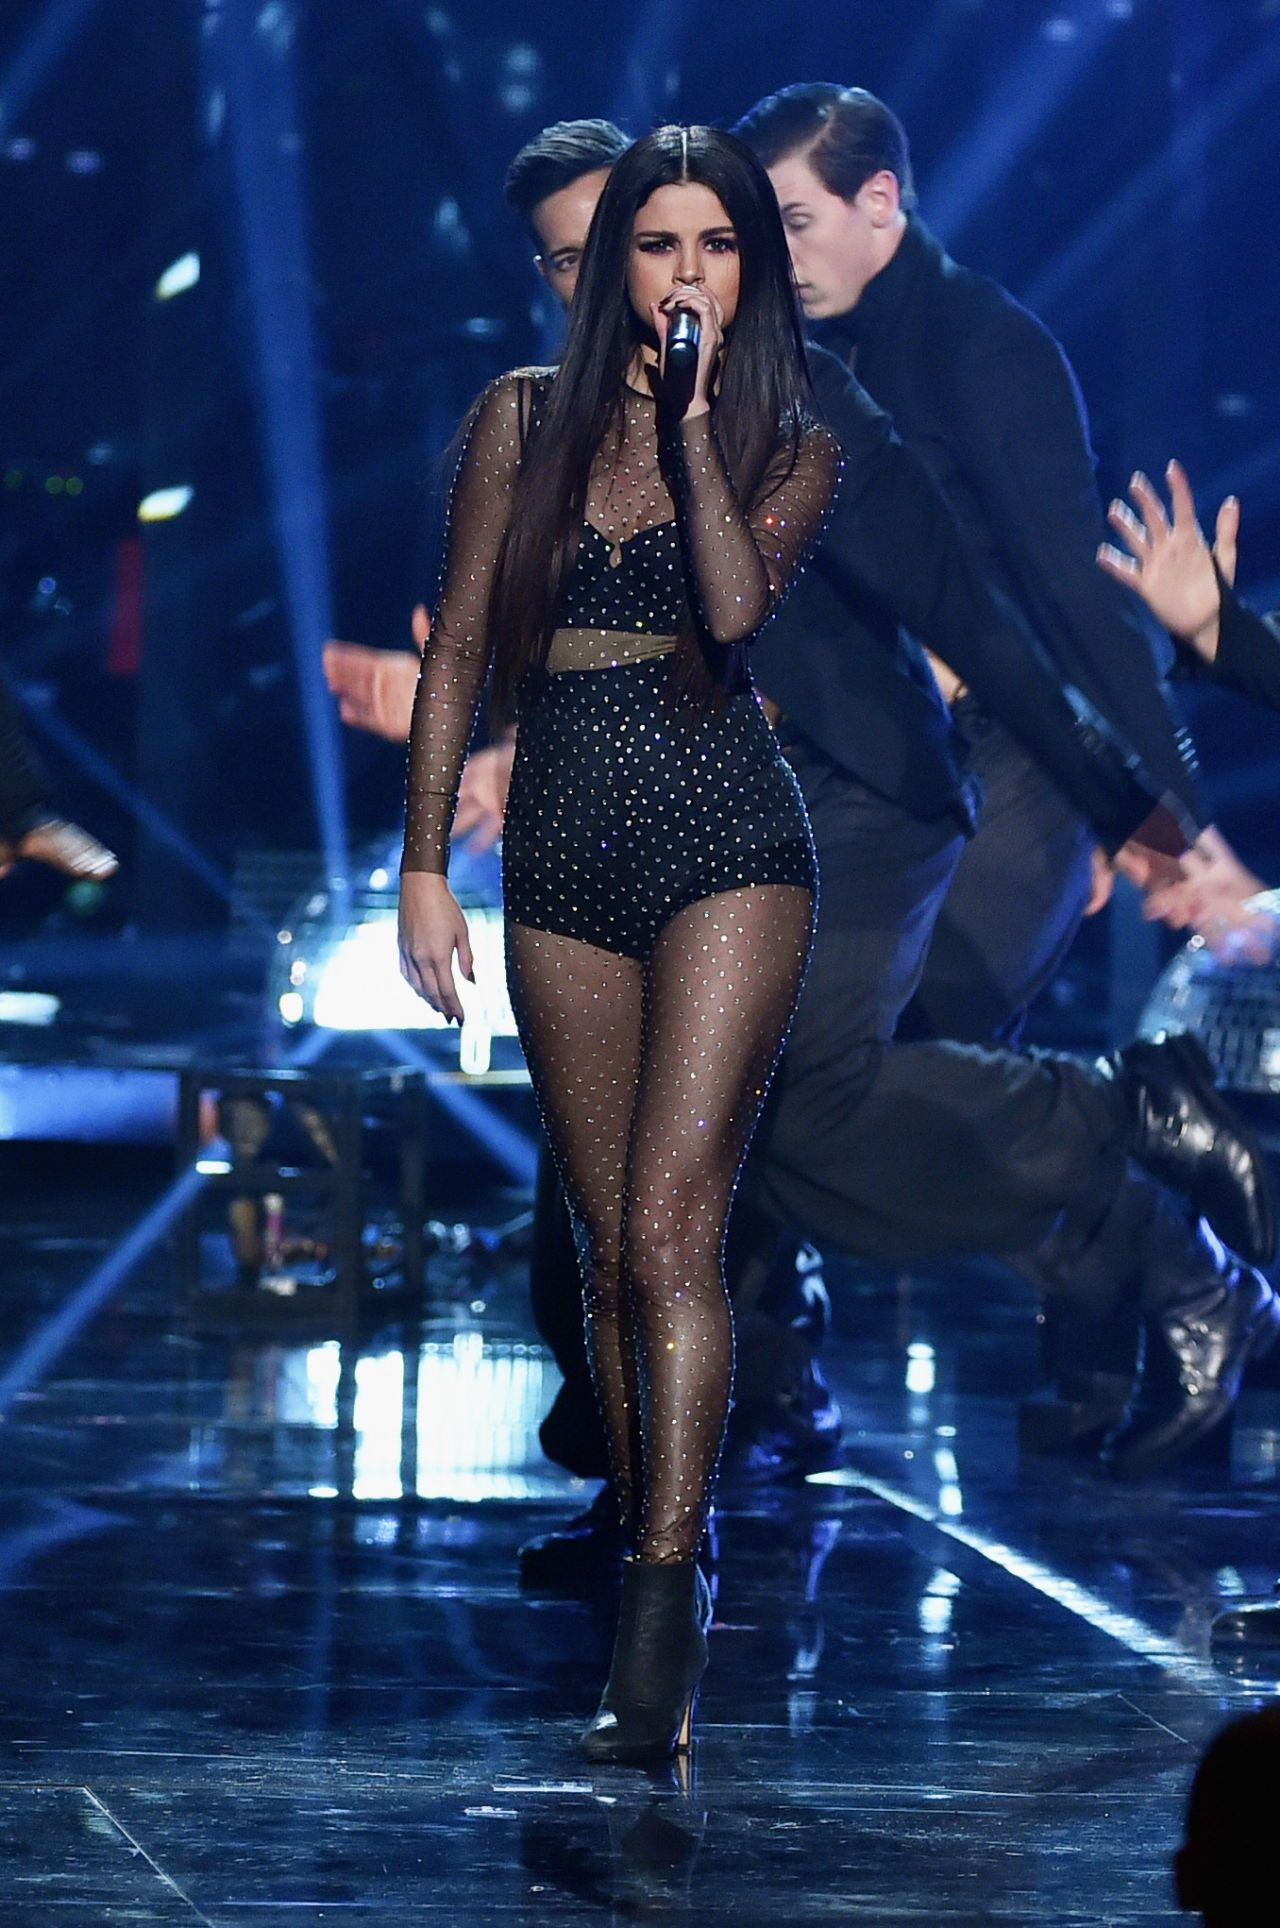 selena gomez performs at 2015 american music awards in los